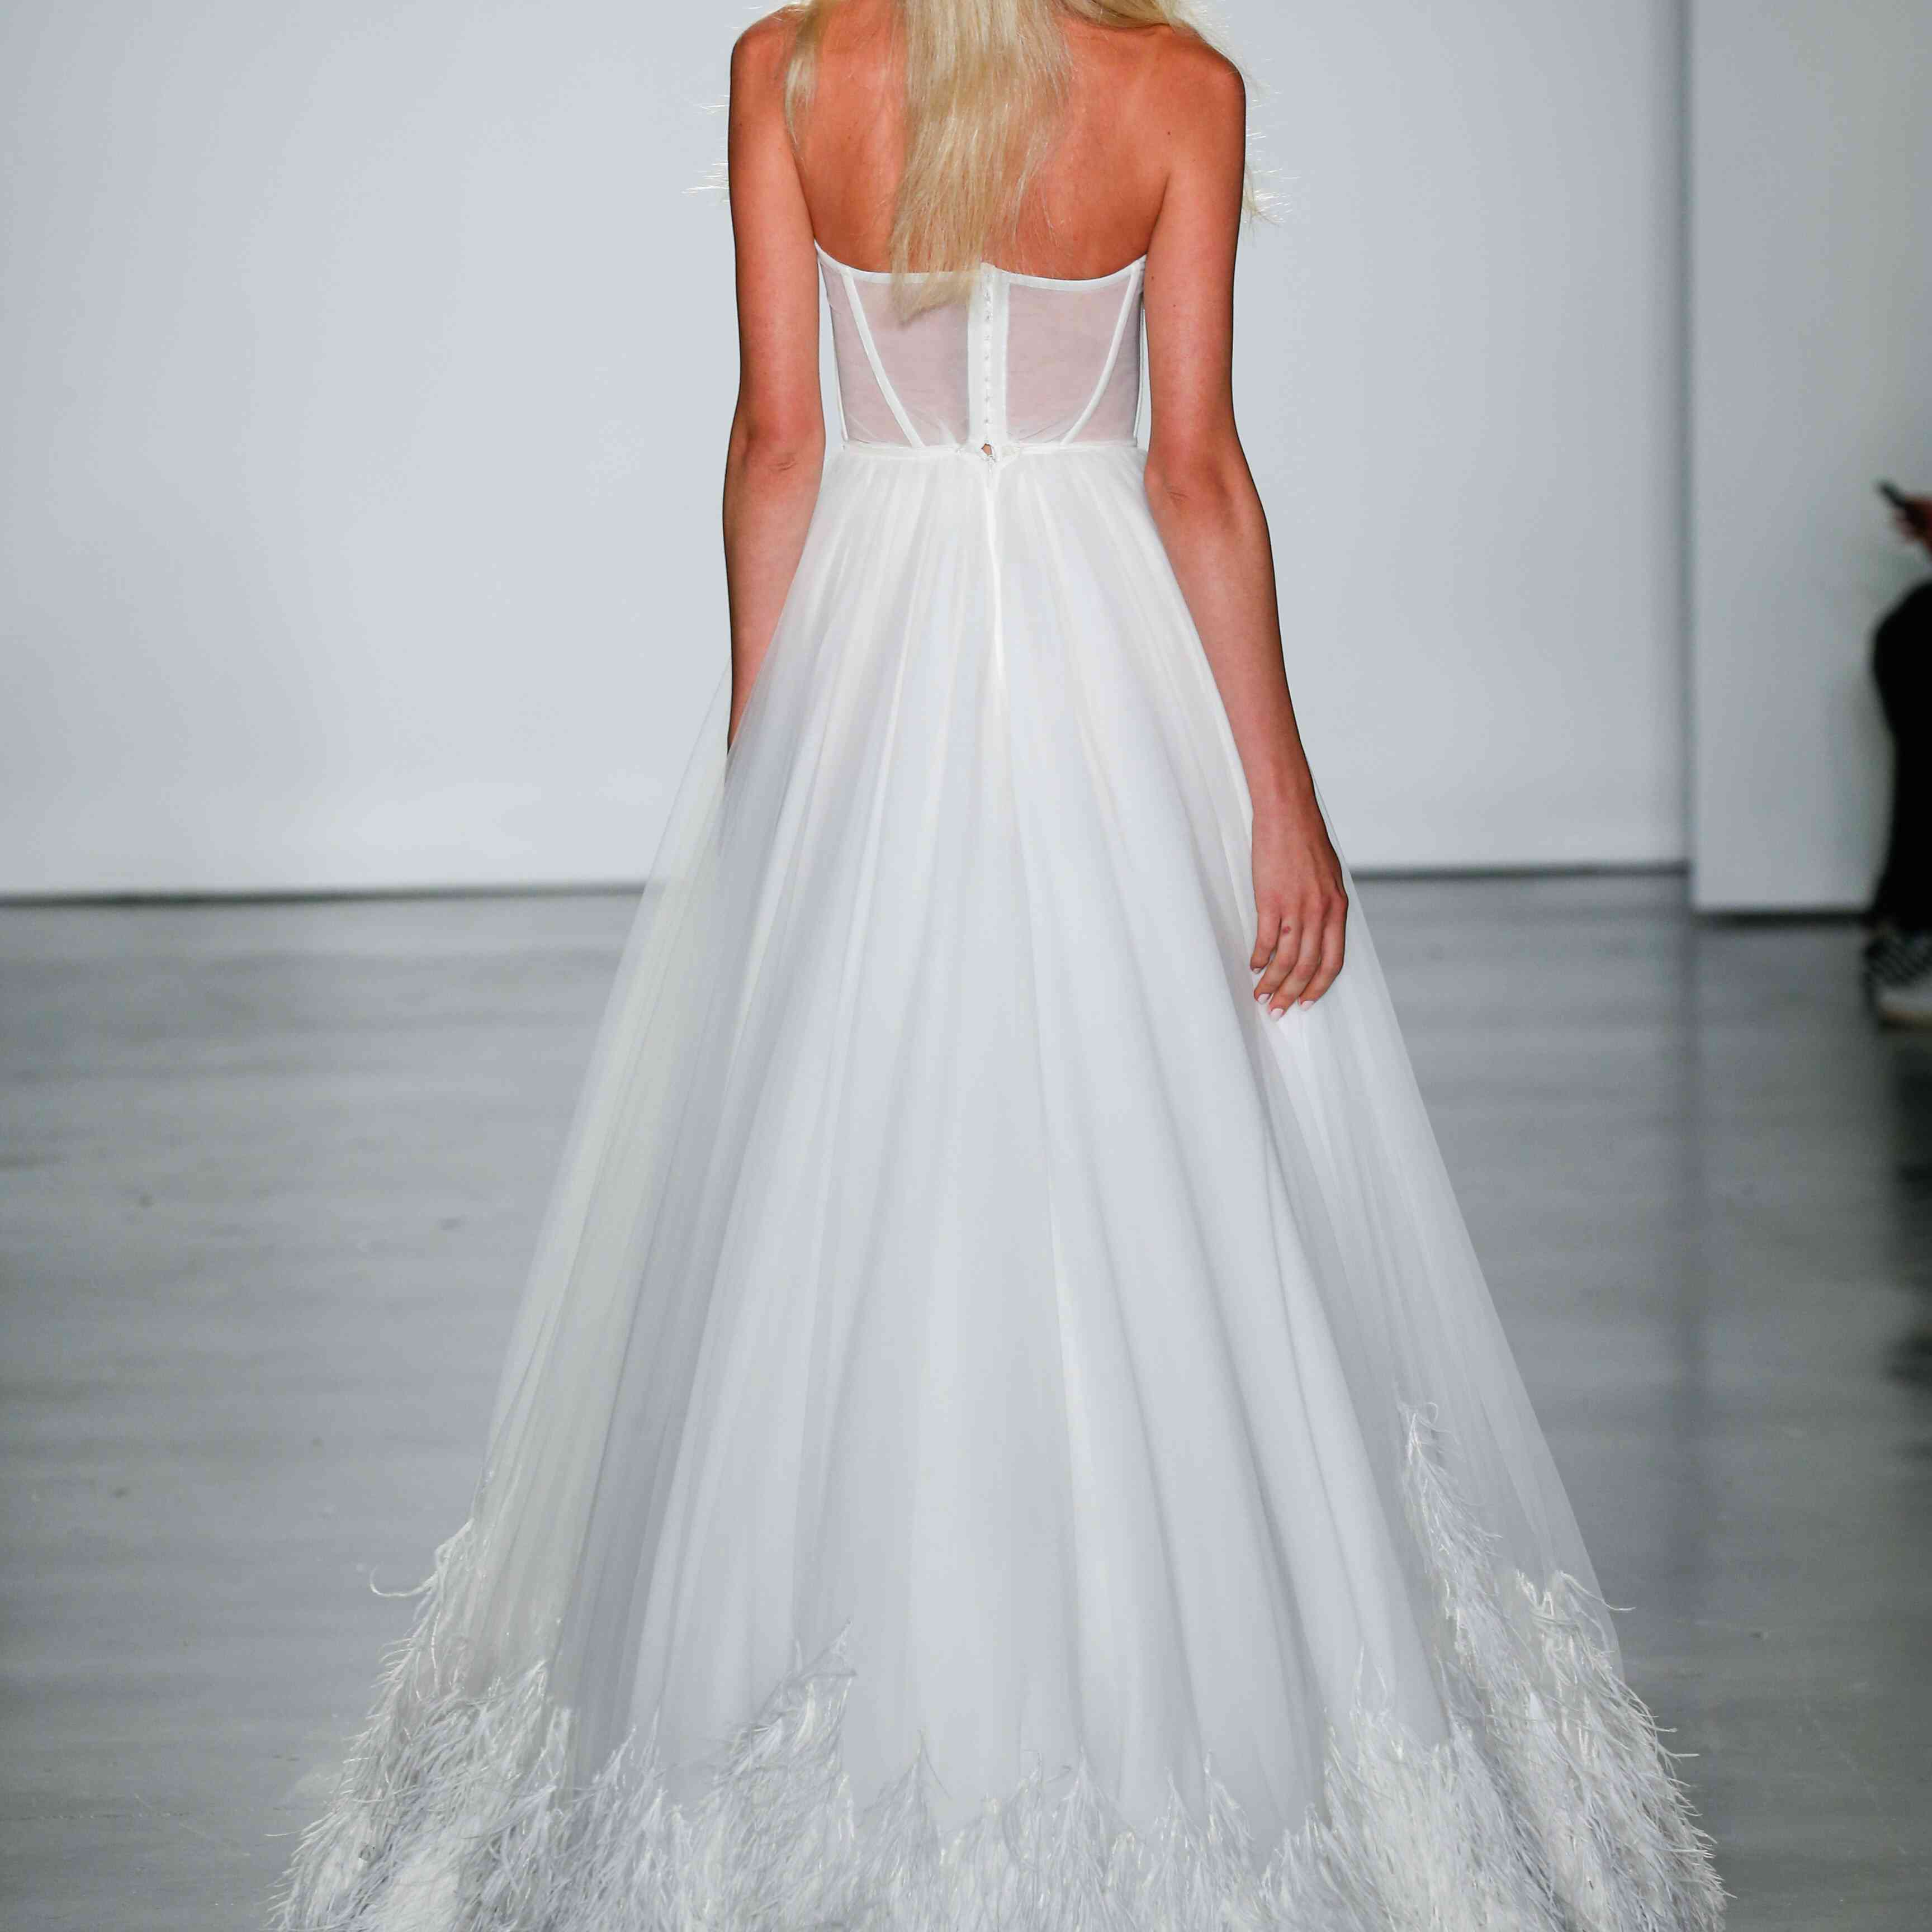 Model in strapless wedding dress with feathered hem